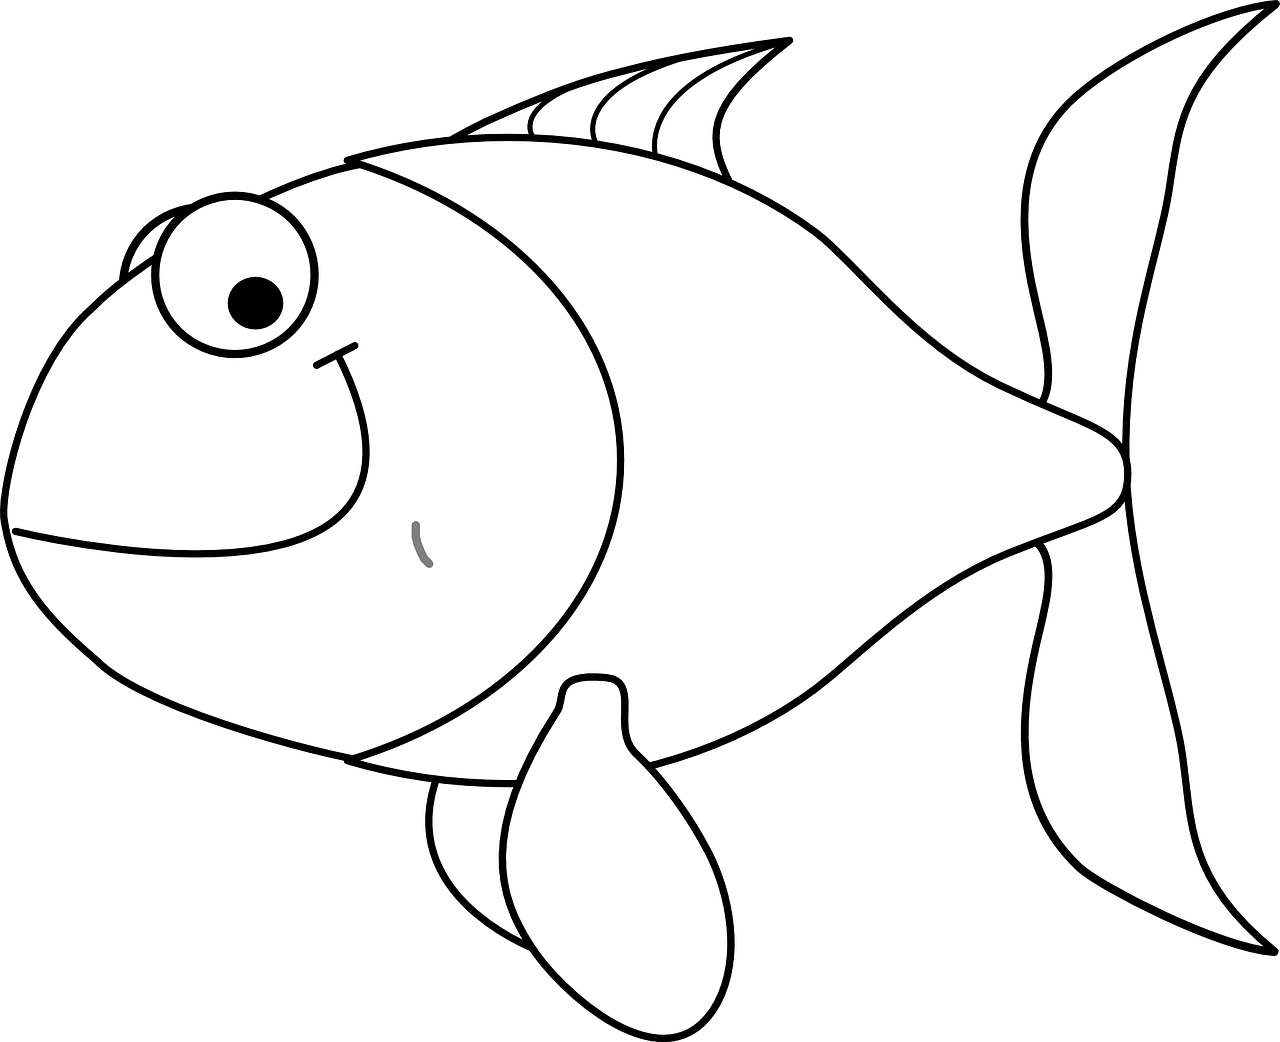 free coloring pages fish free easy to print fish coloring pages tulamama fish coloring pages free